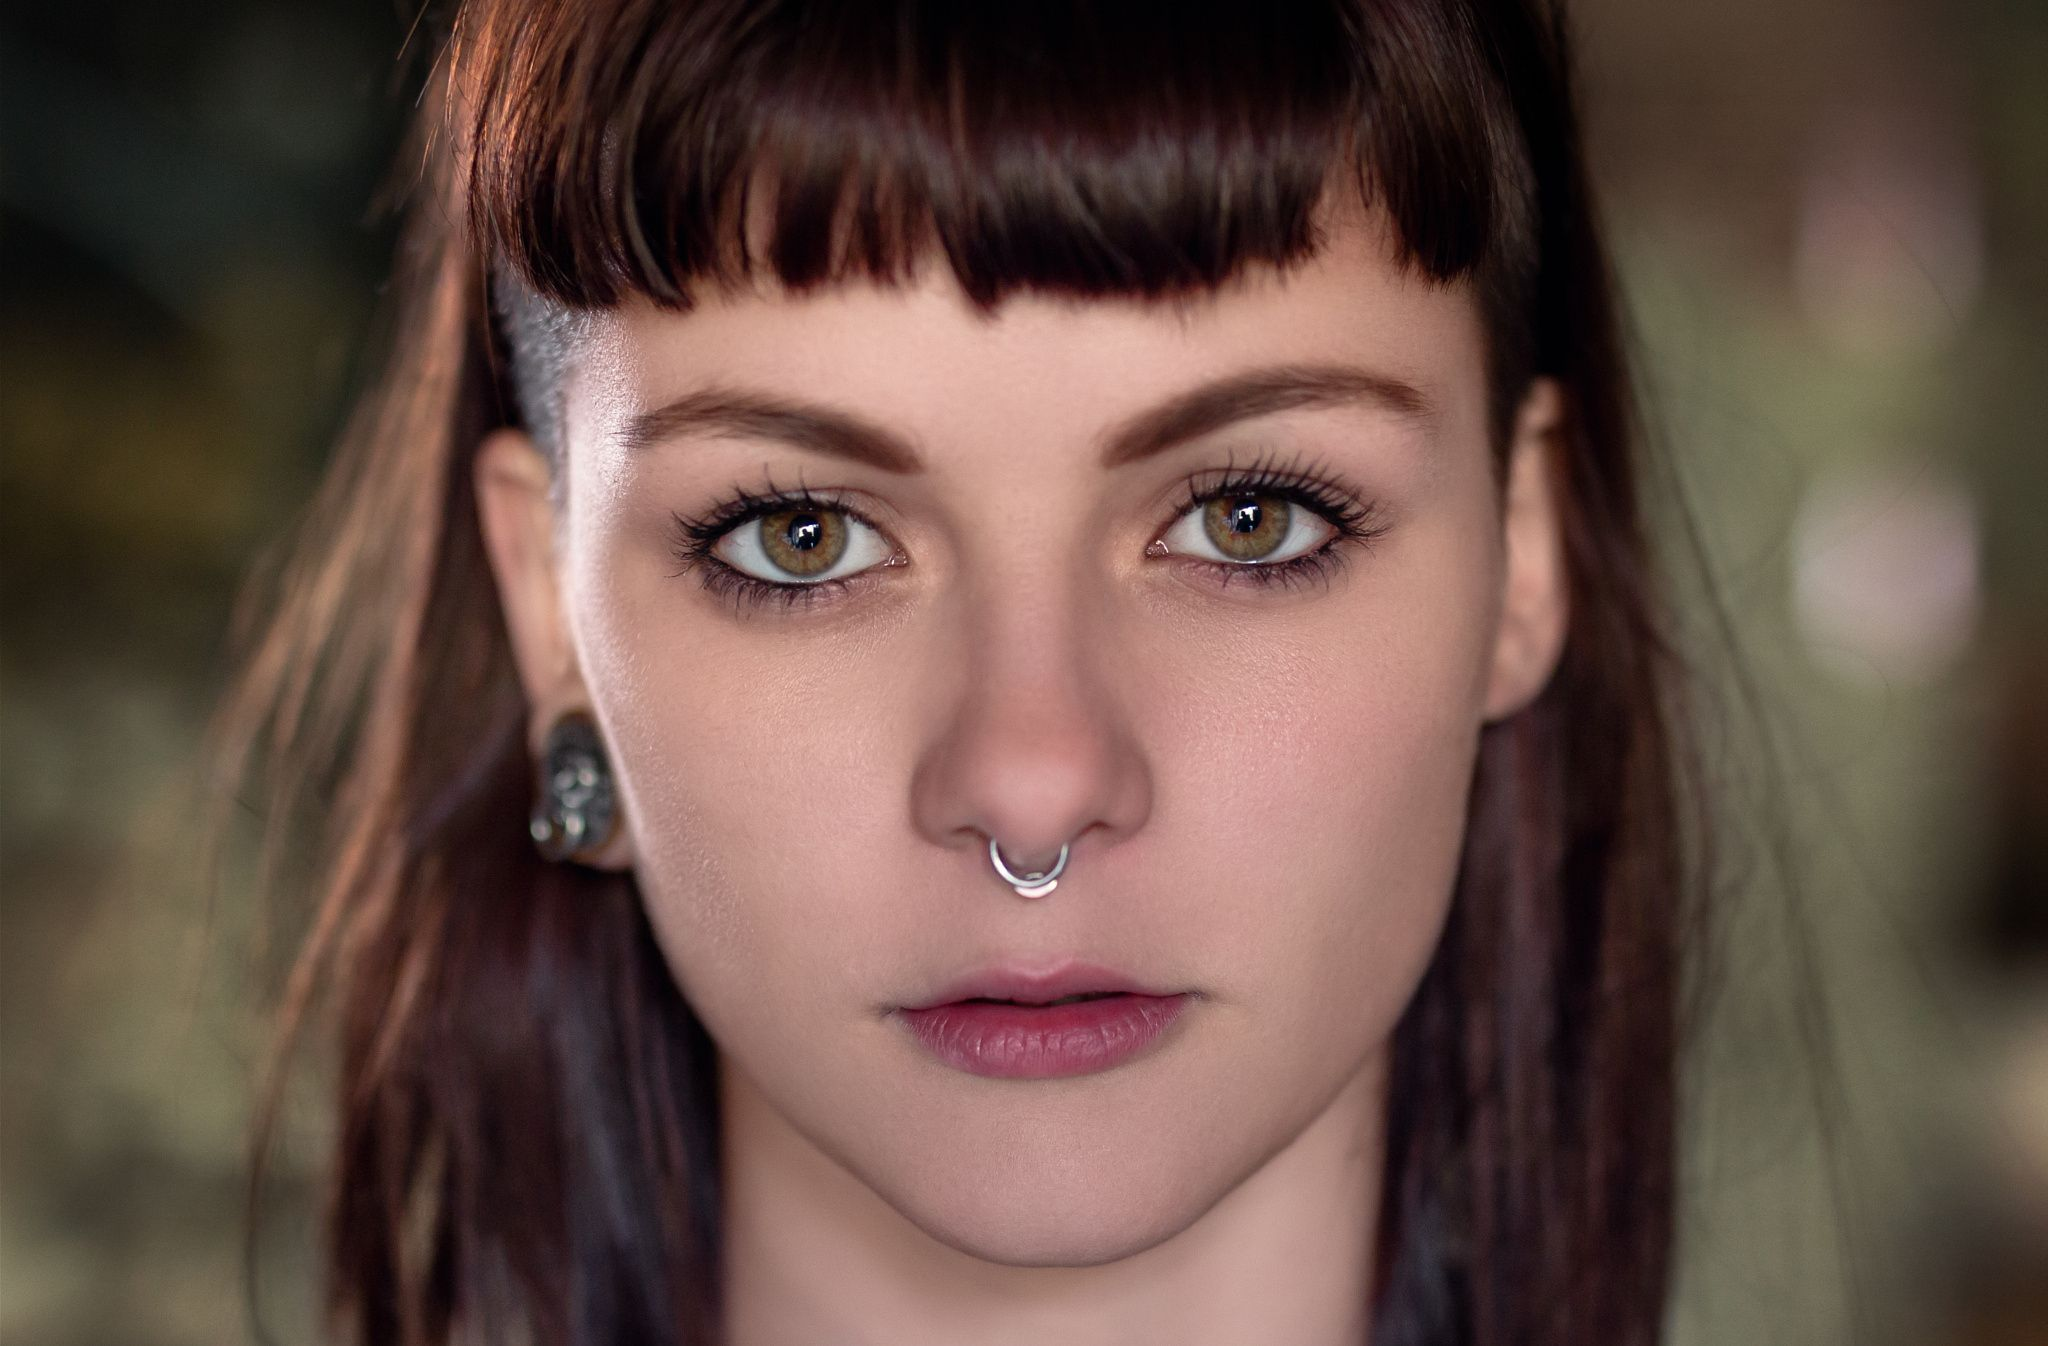 Bump on nose after piercing  Morgane  Morgane à Toulouse  Nose rings and more  Pinterest